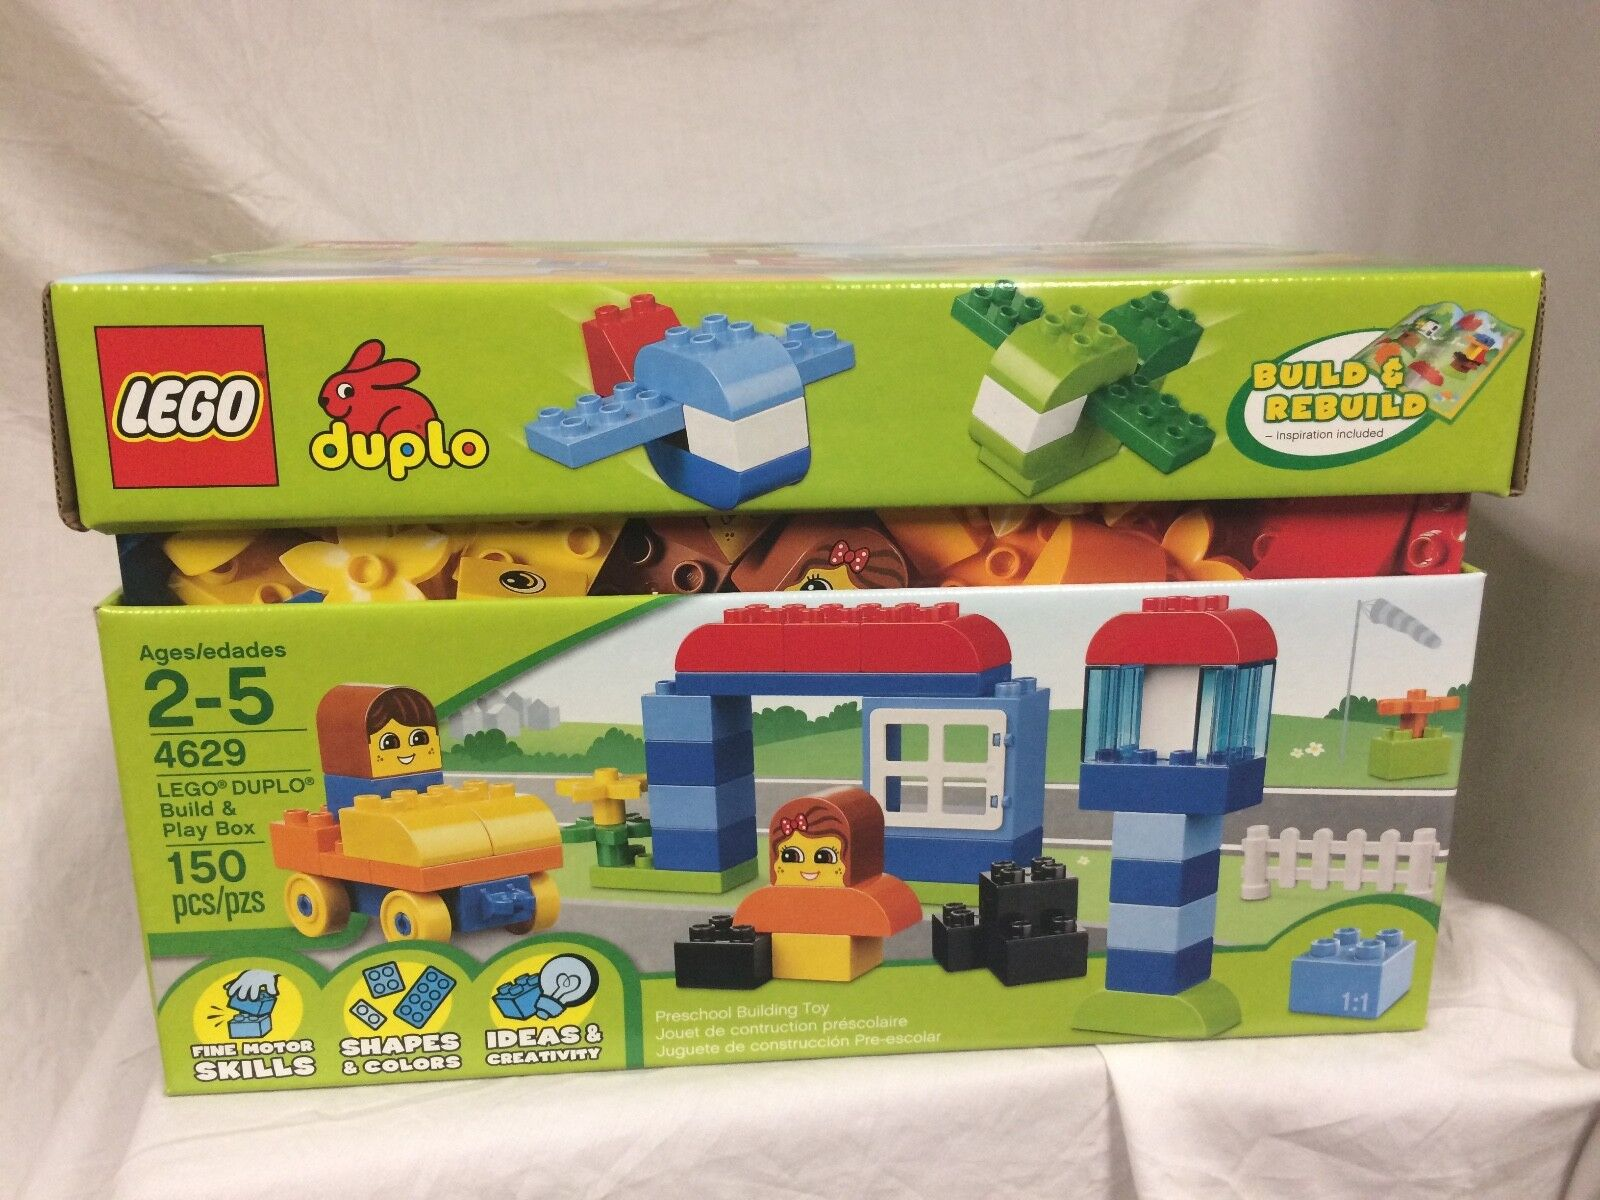 Lego 4629 Duplo Build and Play Box Retired NEW SEALED Perfect Box SEALED